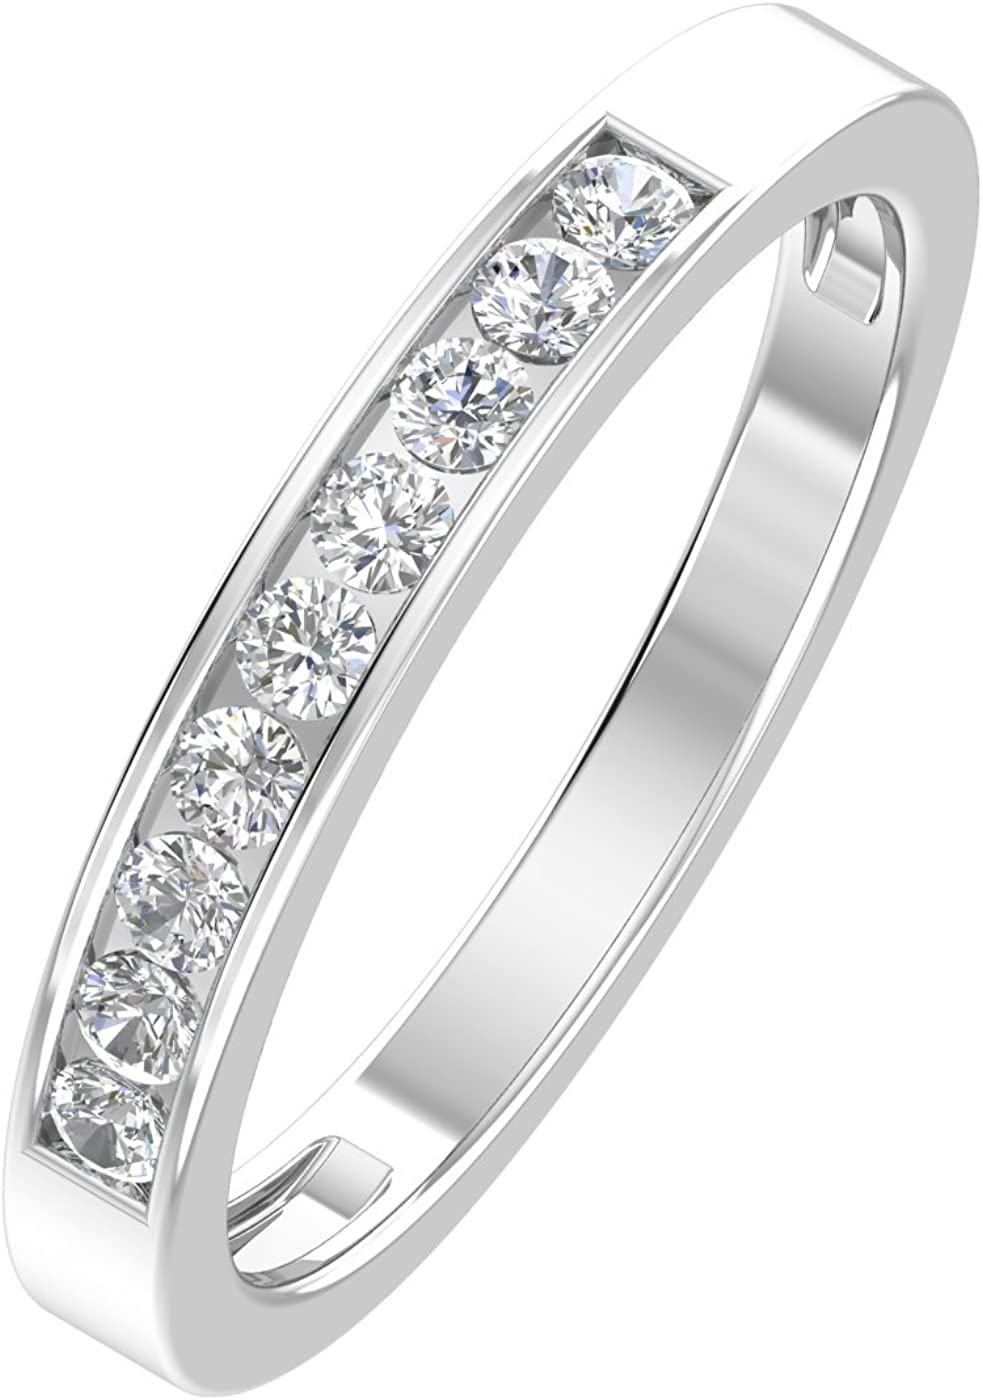 1/4ctw Diamond Channel Wedding Band in 10k White Gold or Yellow Gold